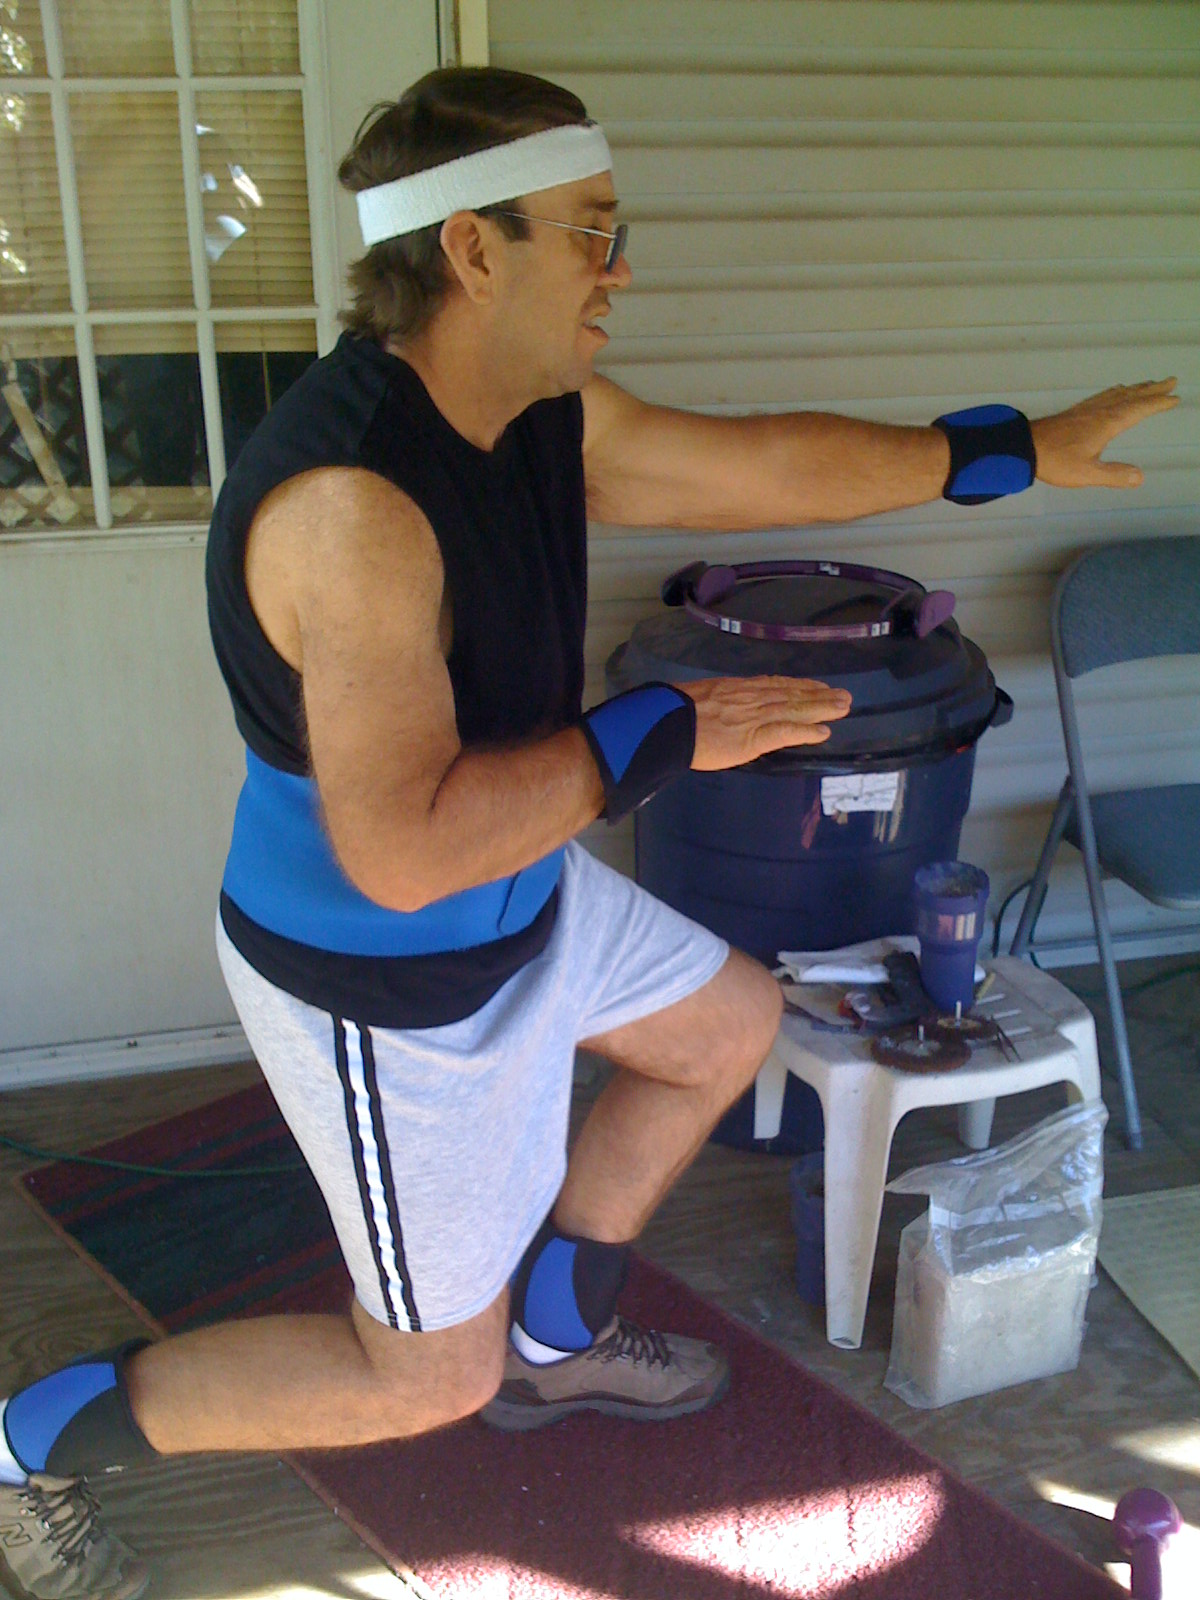 James uses wrist and ankle weights in an effort to maintain and improve strength. James says during his weight loss he had to include strength training to maintain muscle mass.